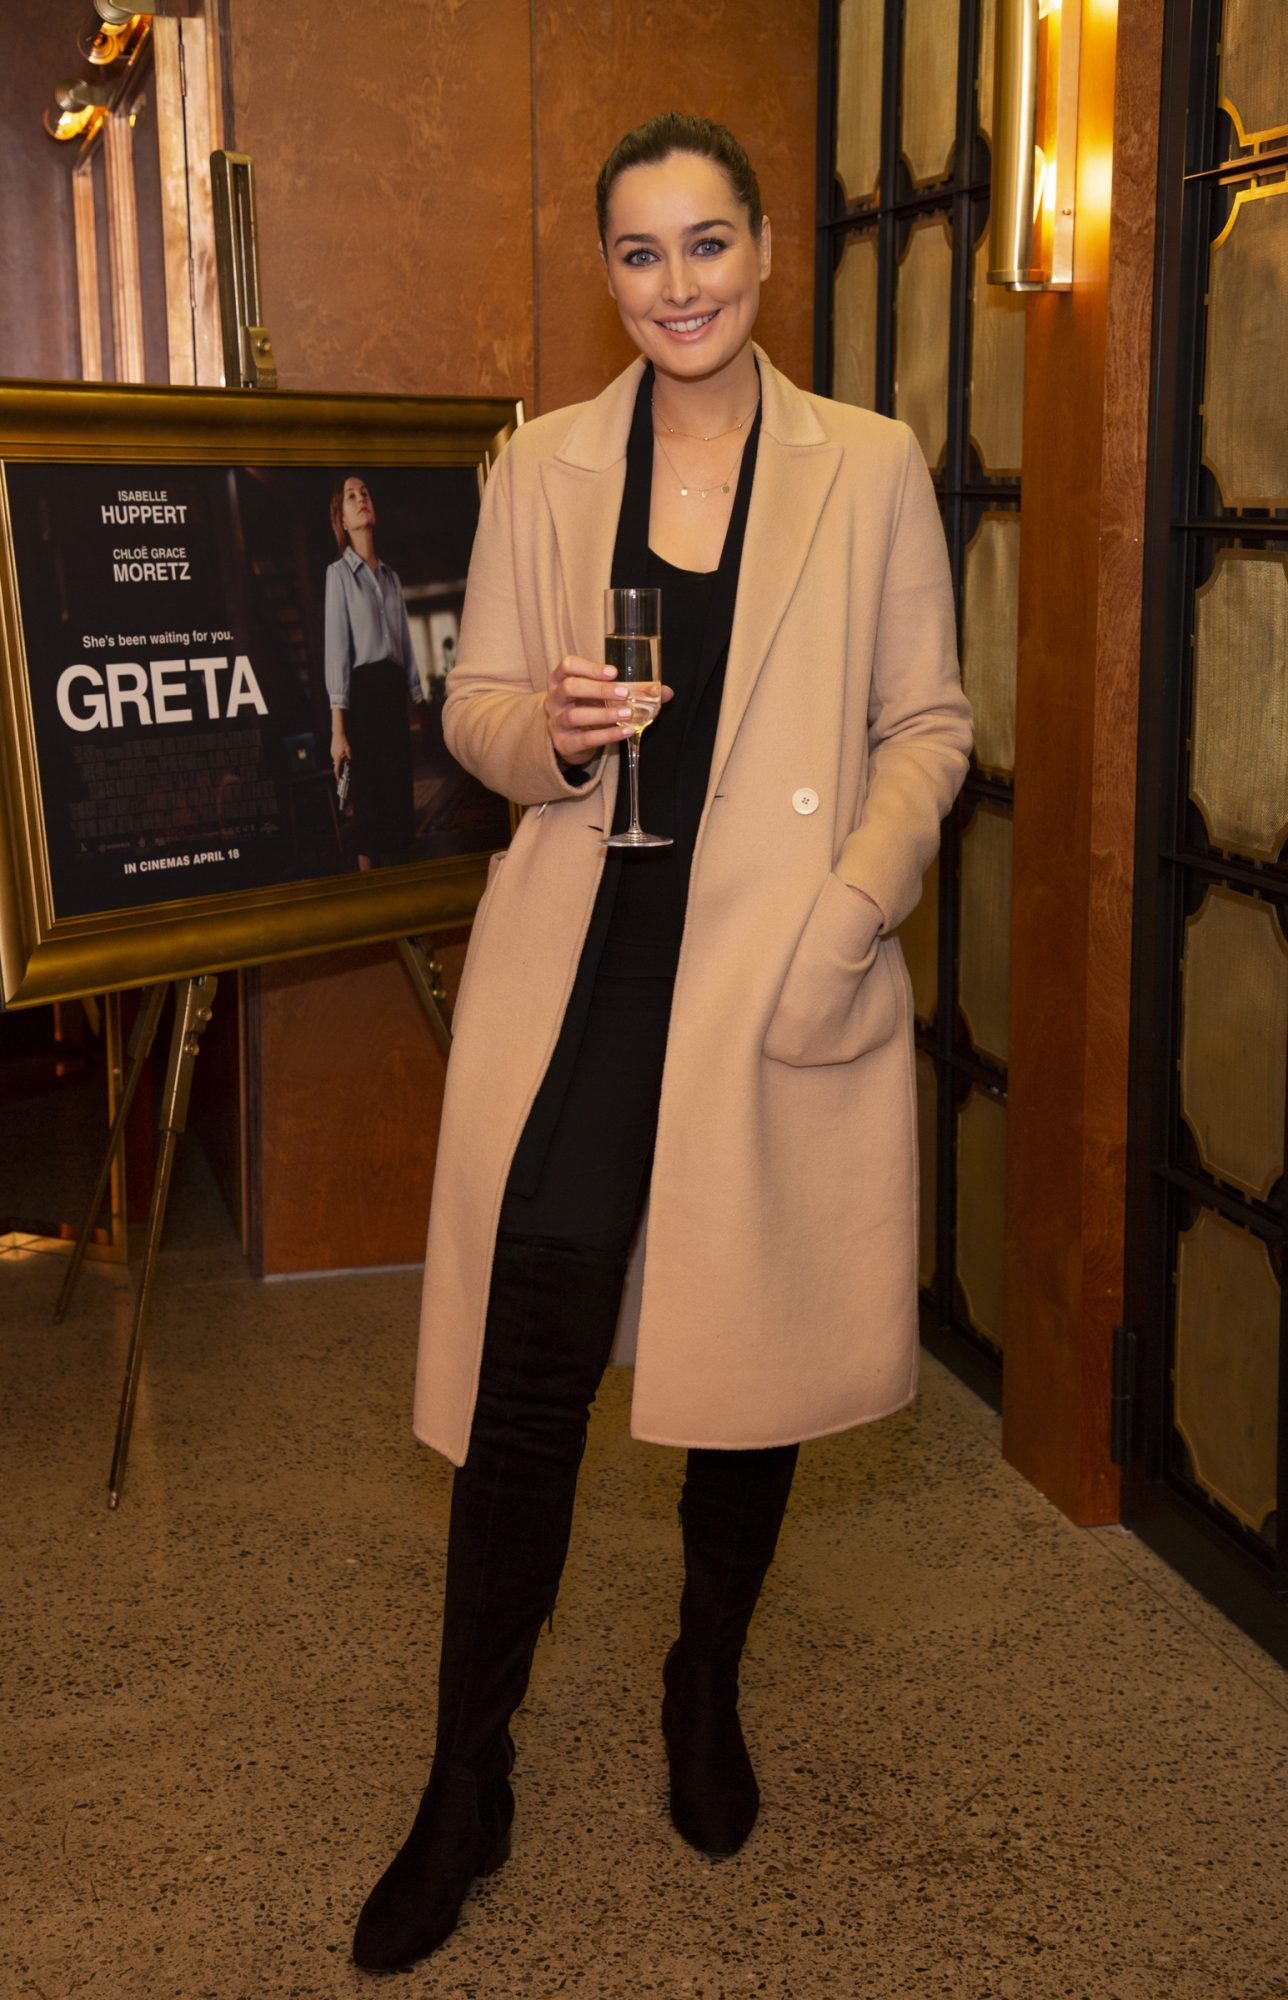 Rachel Purcell pictured at a special preview screening of GRETA at The Stella Theatre, Ranelagh. GRETA, directed by Academy Award®-winner Neil Jordan and starring Chloë Grace Moretz and Isabelle Huppert, hits cinemas across Ireland this Thursday 18th April. Photo: Anthony Woods